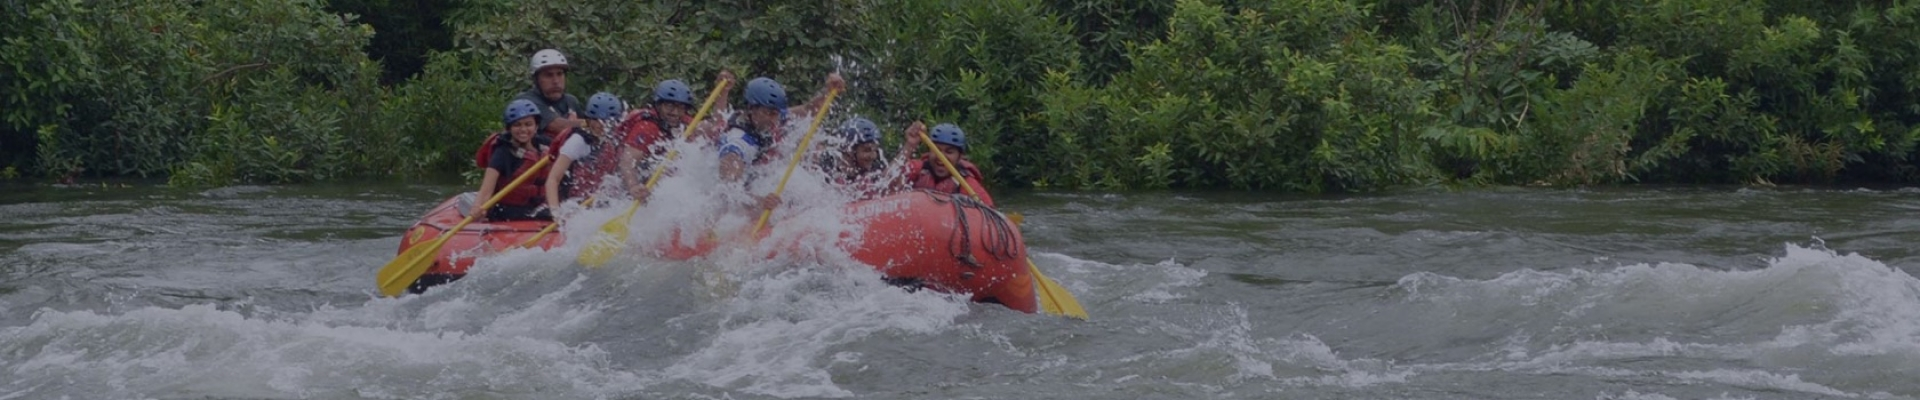 Thrilling rafting packages, from day trips to overnight stays in tents, dorms or cottages